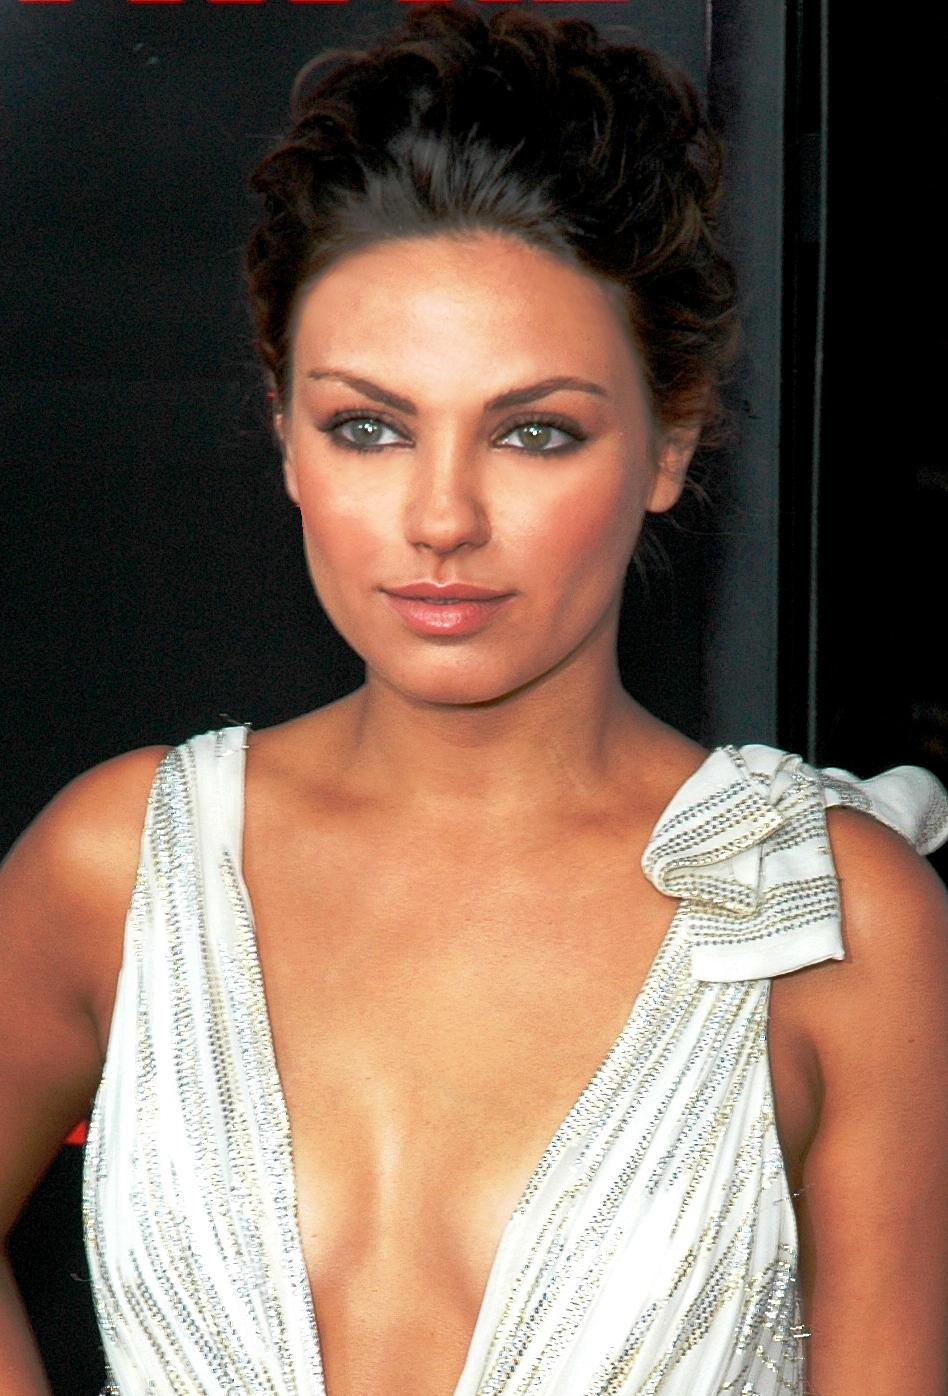 Description Mila Kunis 2008.jpg